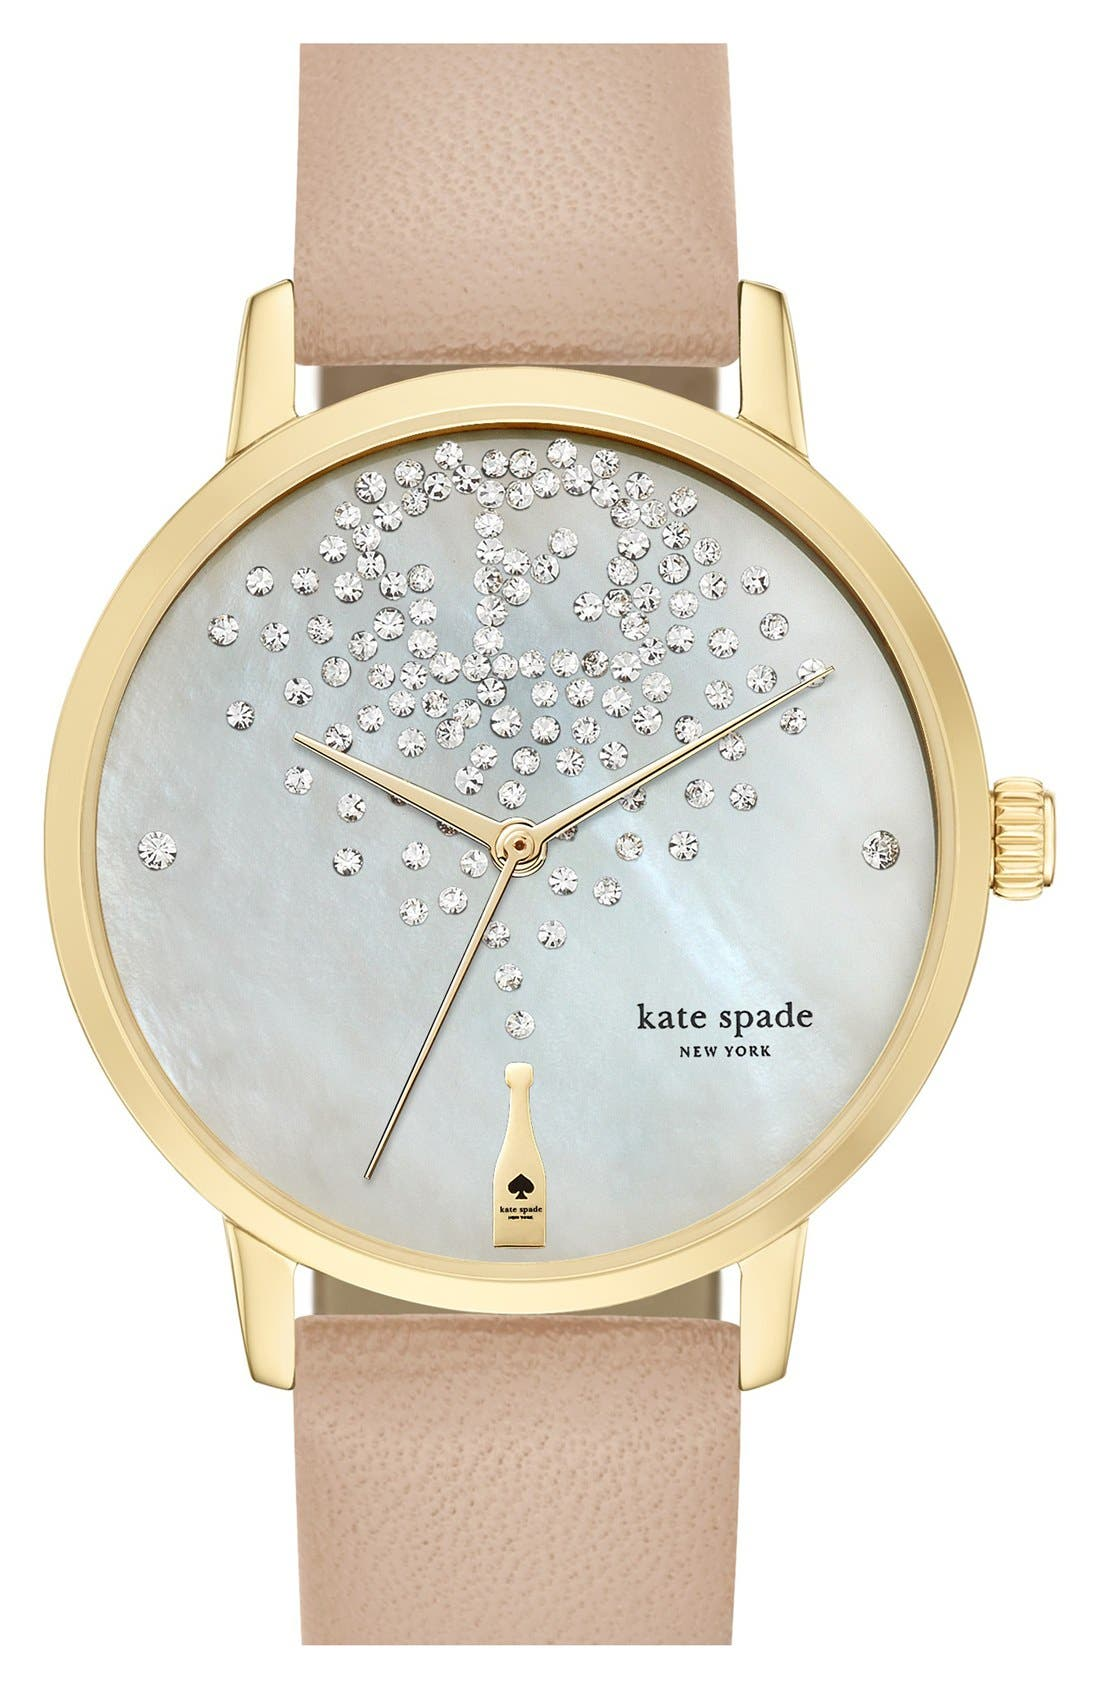 KATE SPADE NEW YORK 'metro' leather strap watch,